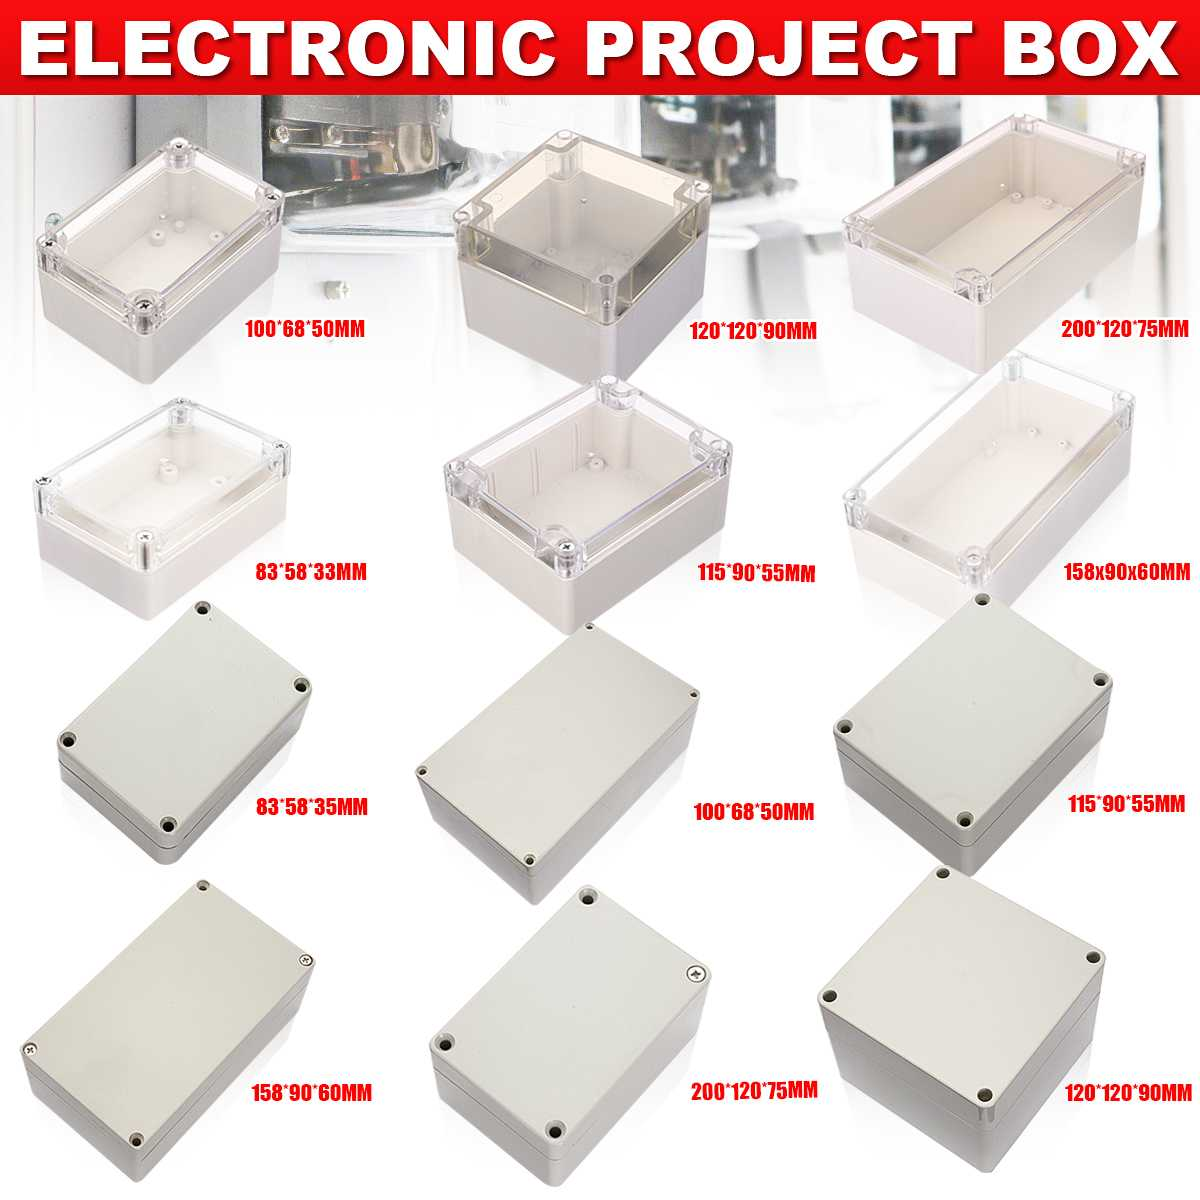 6-size-waterproof-plastic-enclosure-box-electronic-project-instrument-case-electrical-project-box-outdoor-junction-box-housing